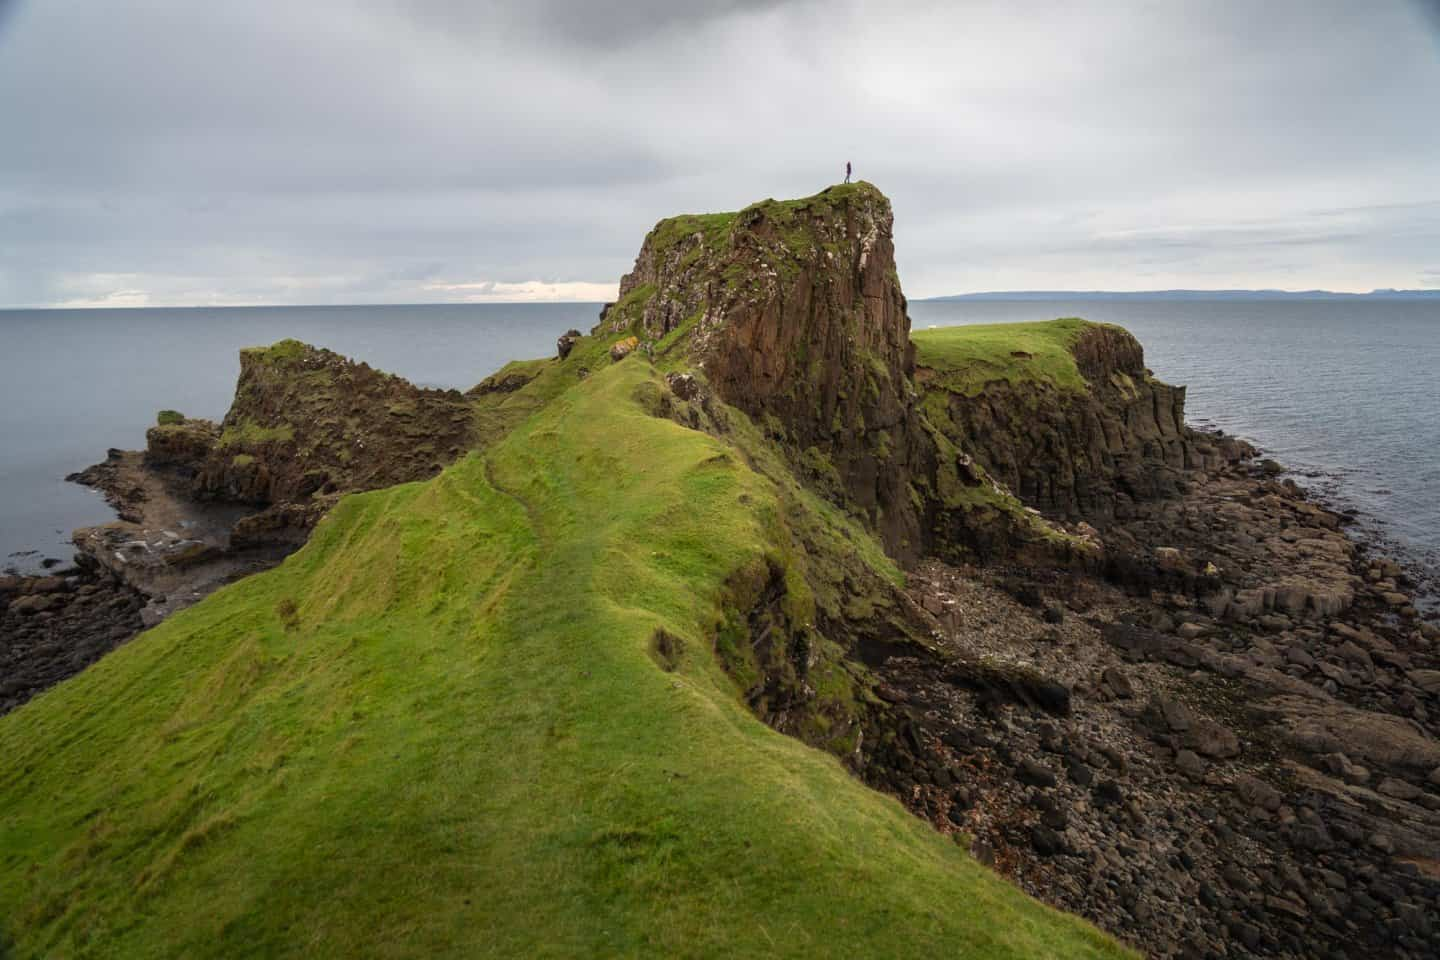 Brothers Point is a skippable stop if time is short during your 10 days in Scotland.